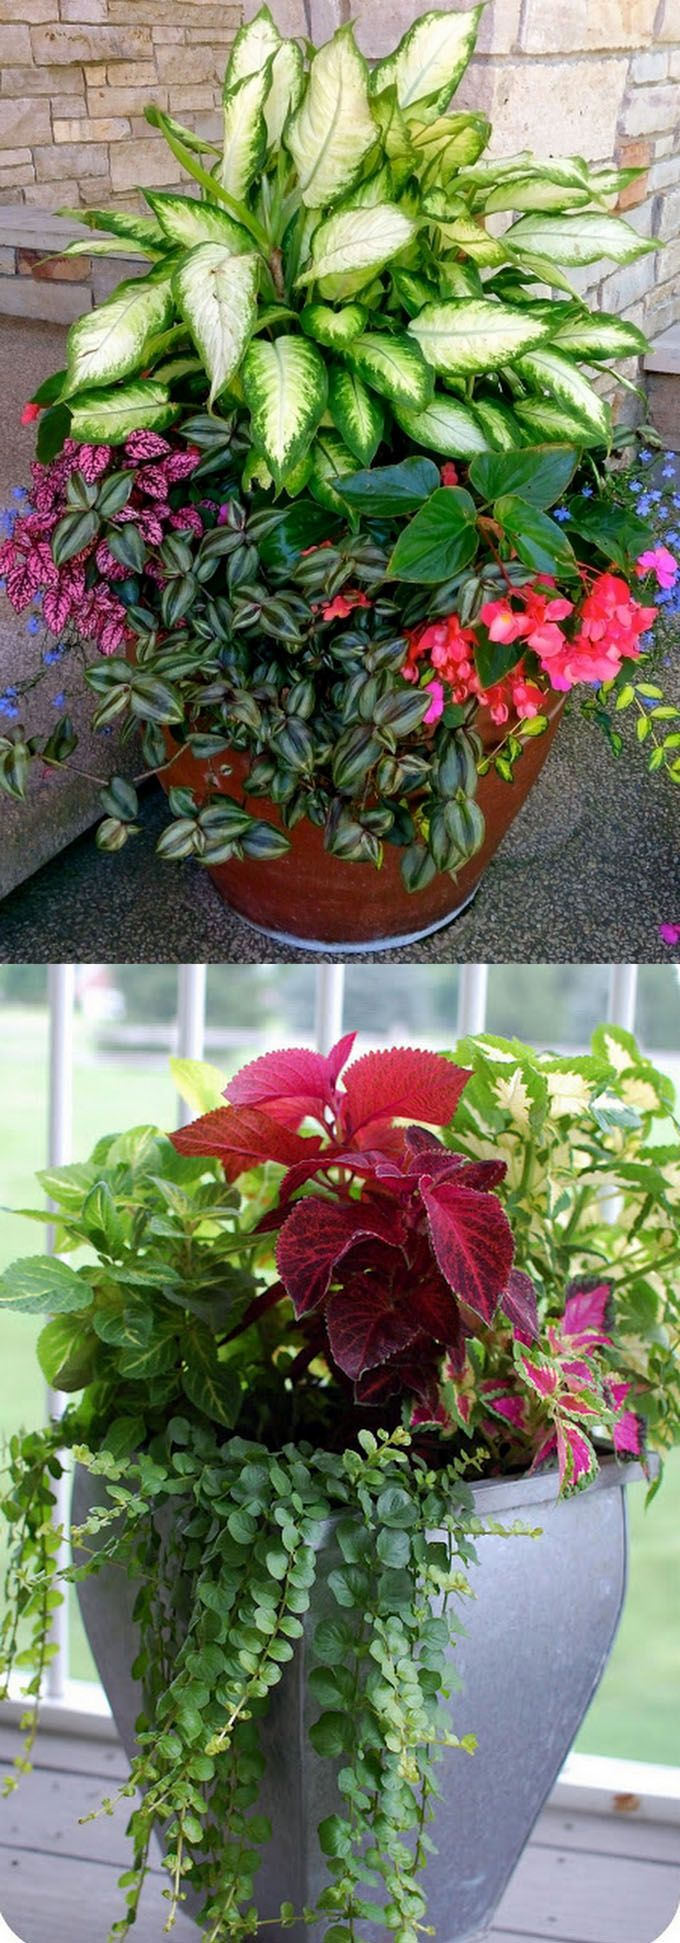 17 of 2017 39 s best potted plants ideas on pinterest for Planting flowers in pots ideas